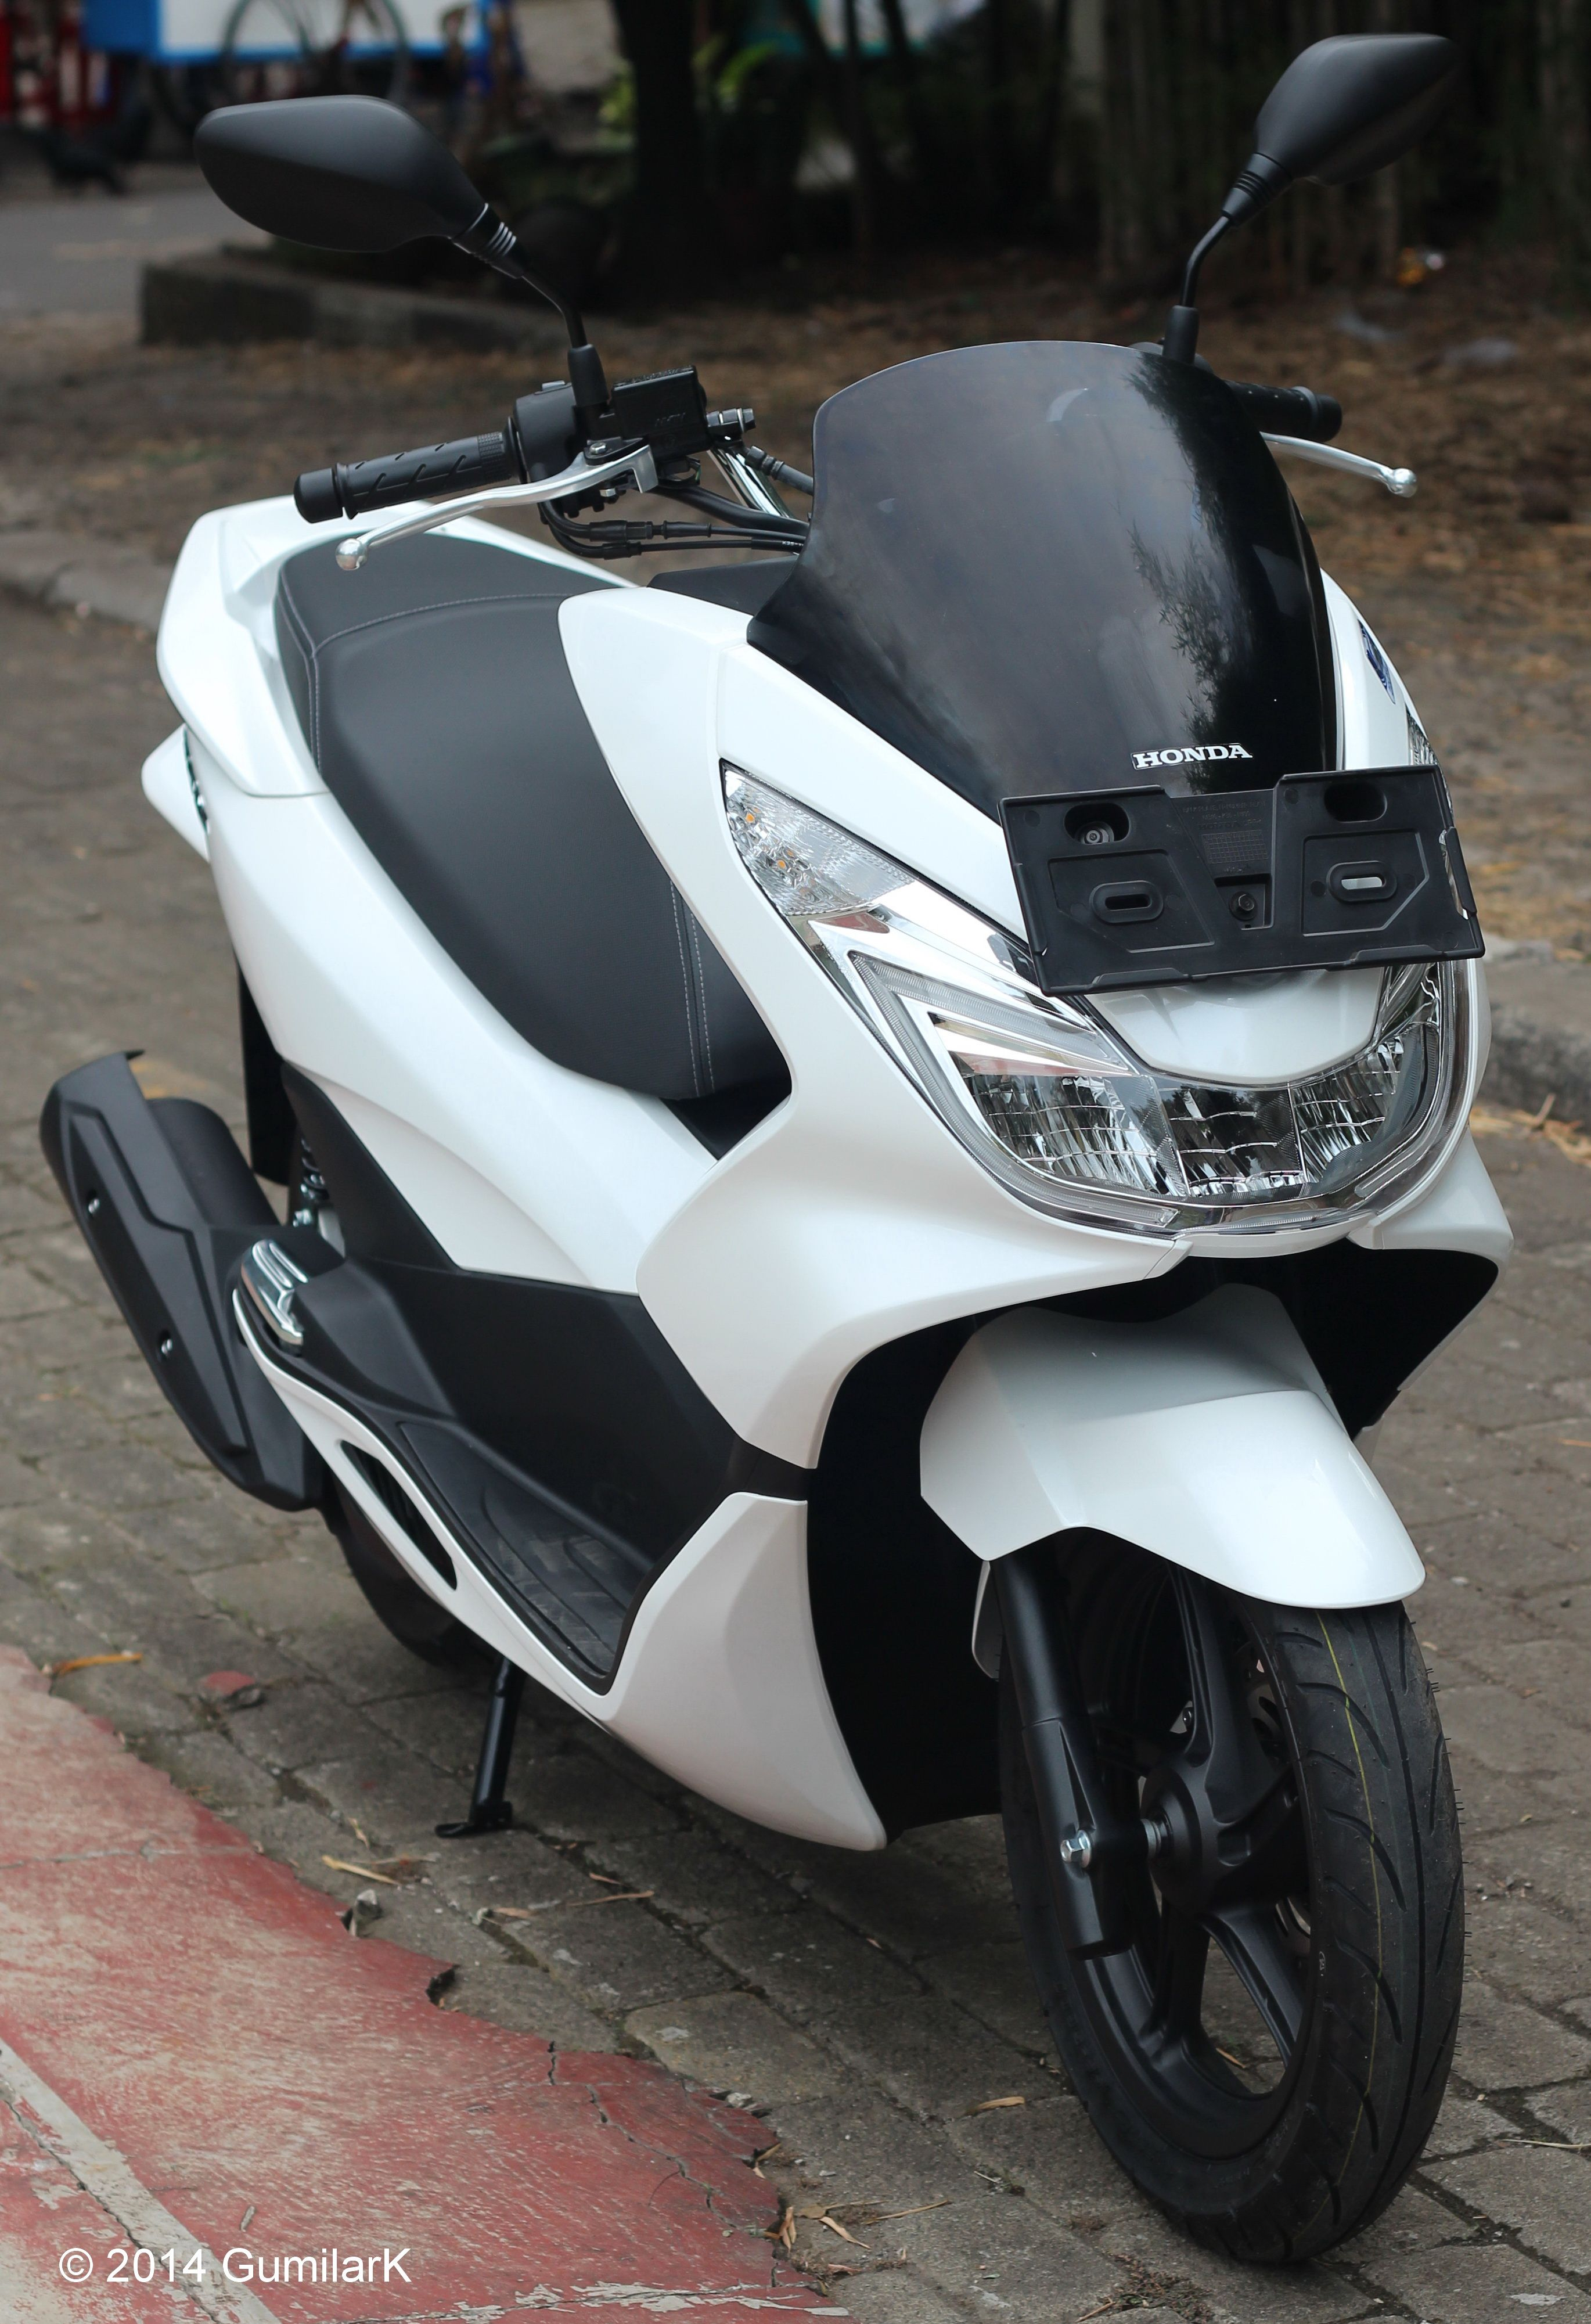 is electric asia and honda sale mini in japan region the scooter on goes features scheduled go including hybrid pcx featureshonda to